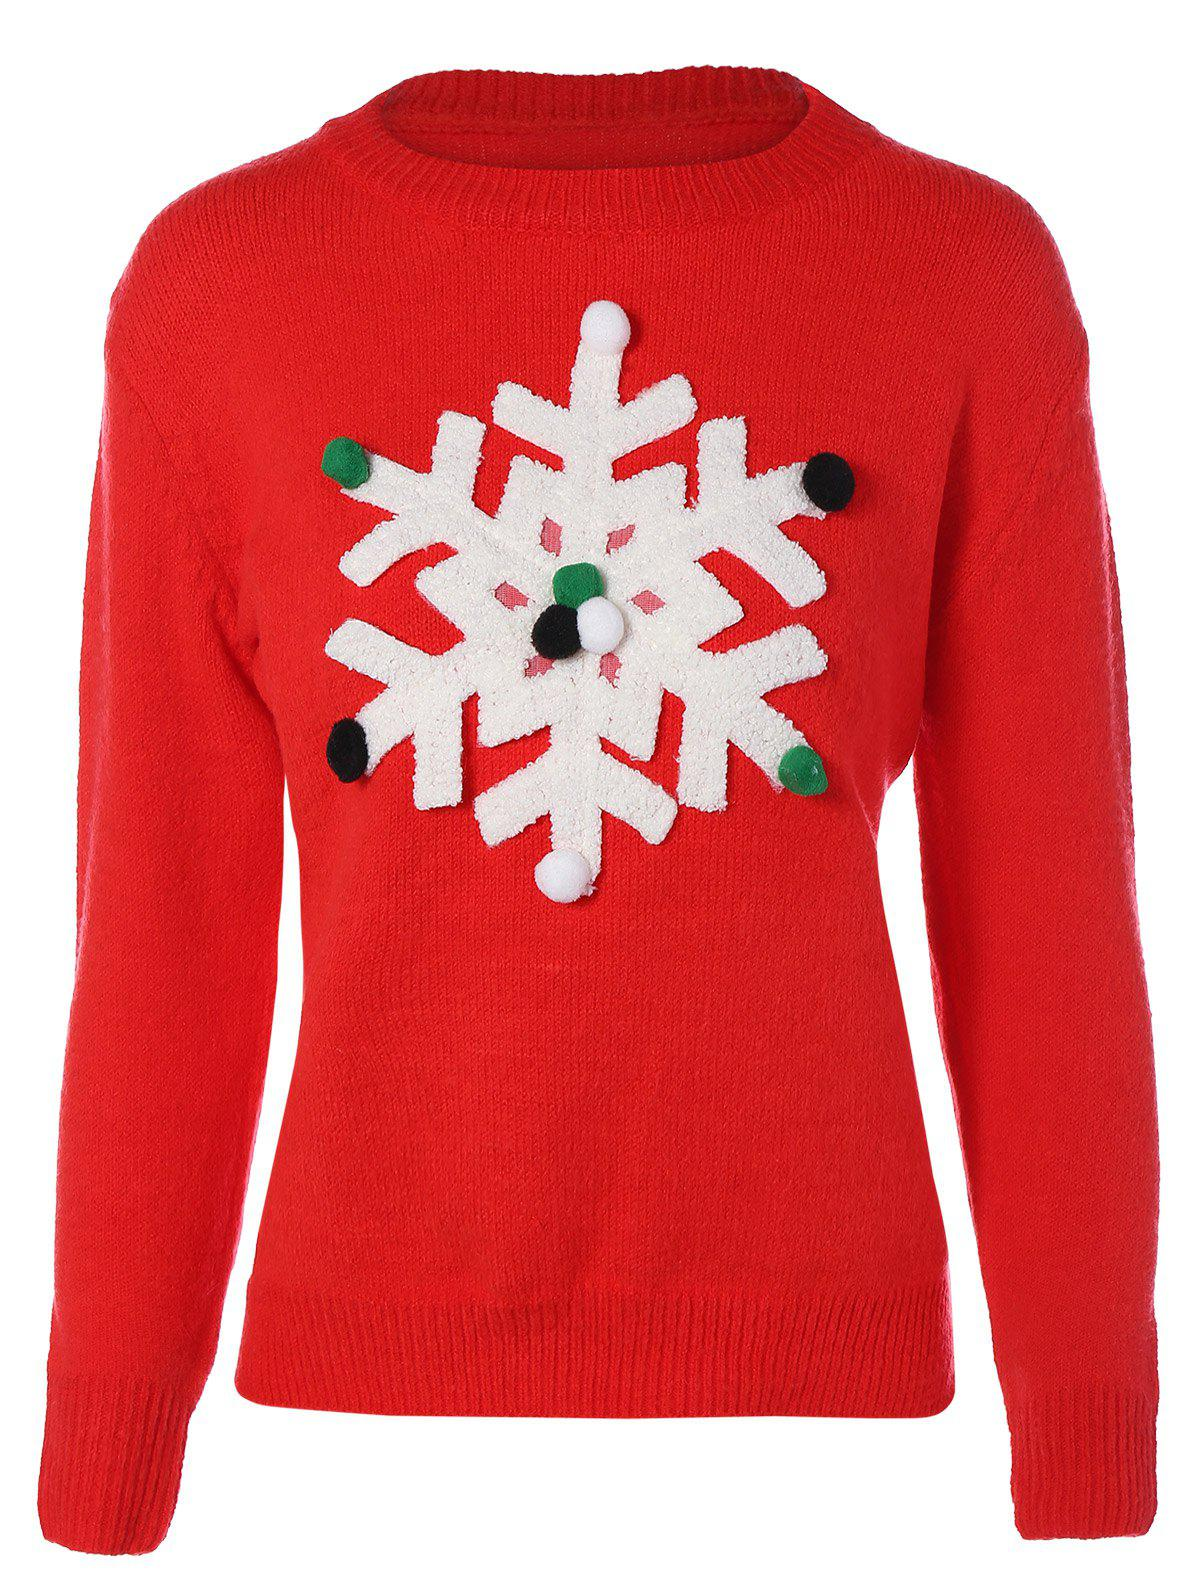 Hot Christmas Snowflakes Sweater